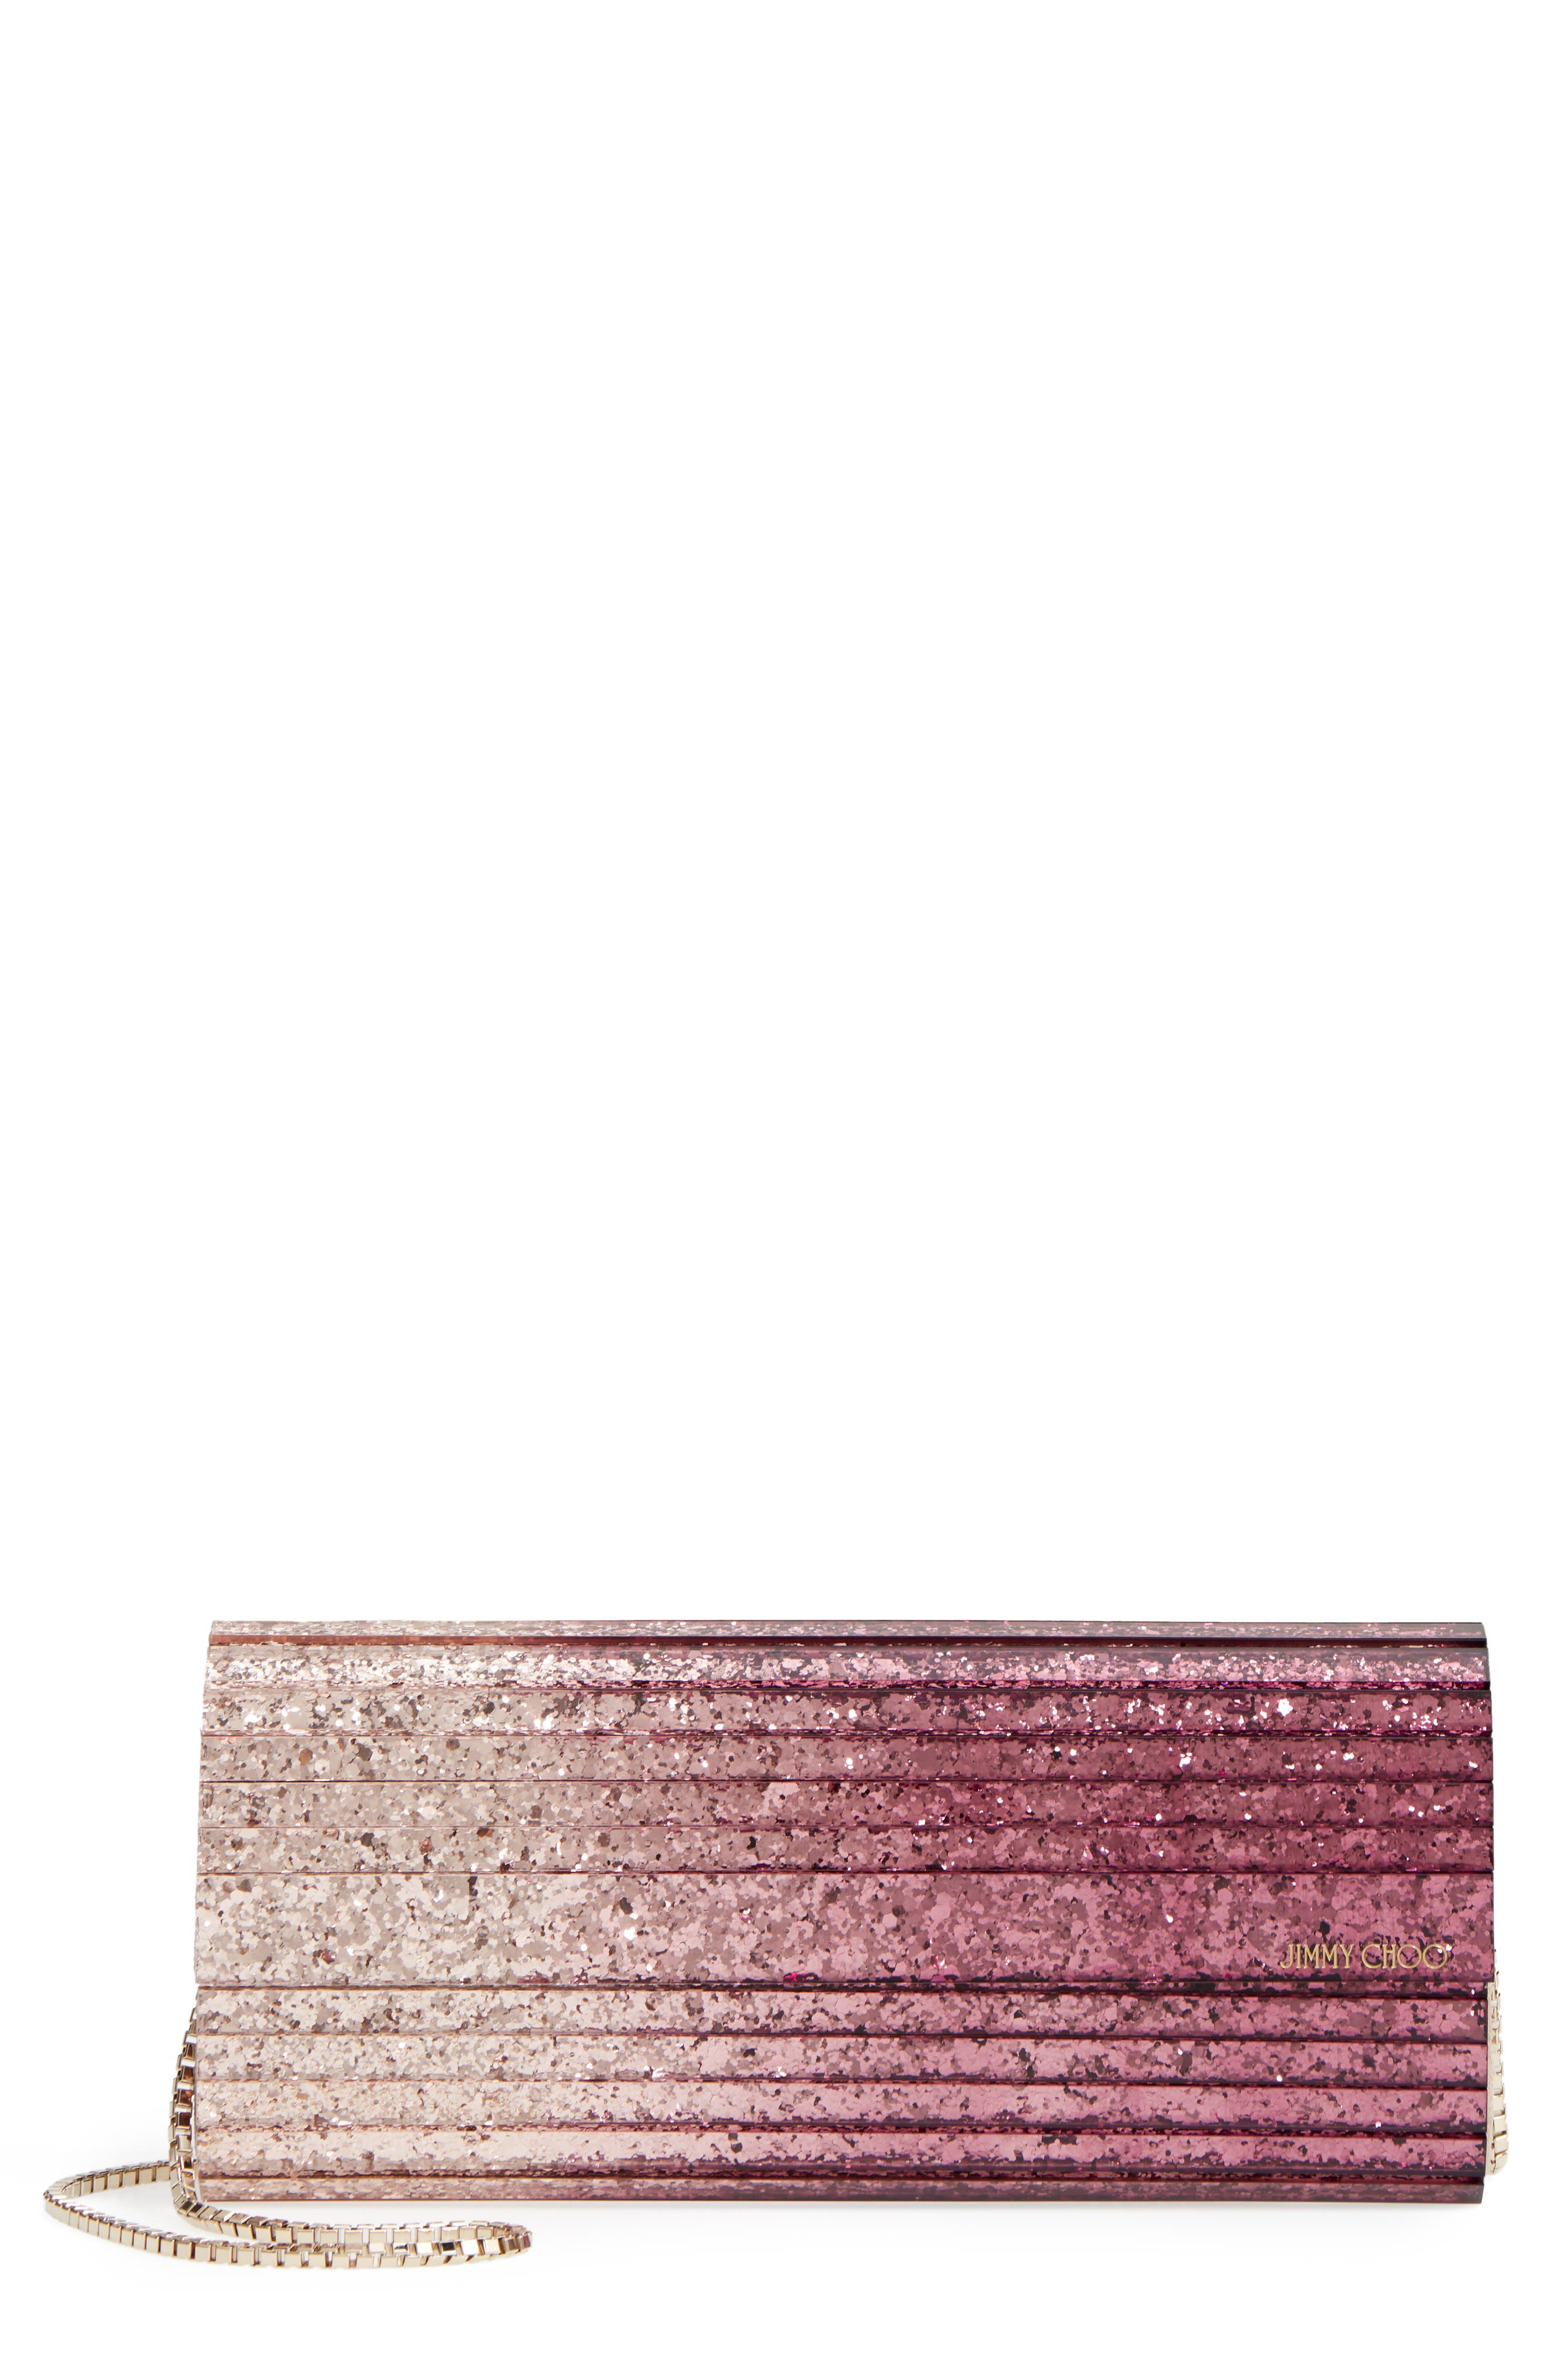 'Sweetie' Clutch,                         Main,                         color, Champagne/ Grape